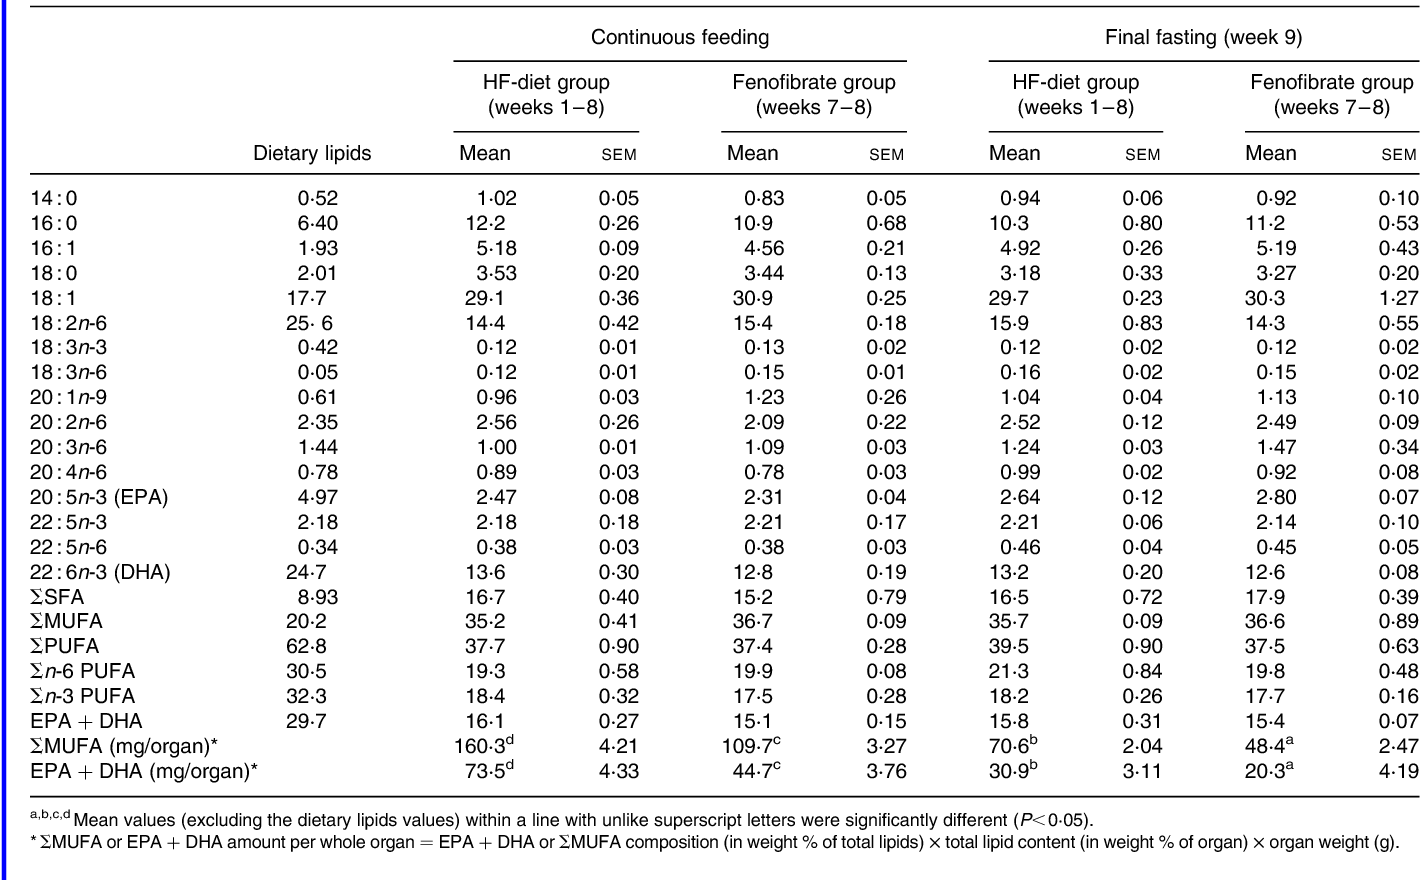 Table 6 From Hypolipidaemic Effects Of Fenofibrate And Fasting In